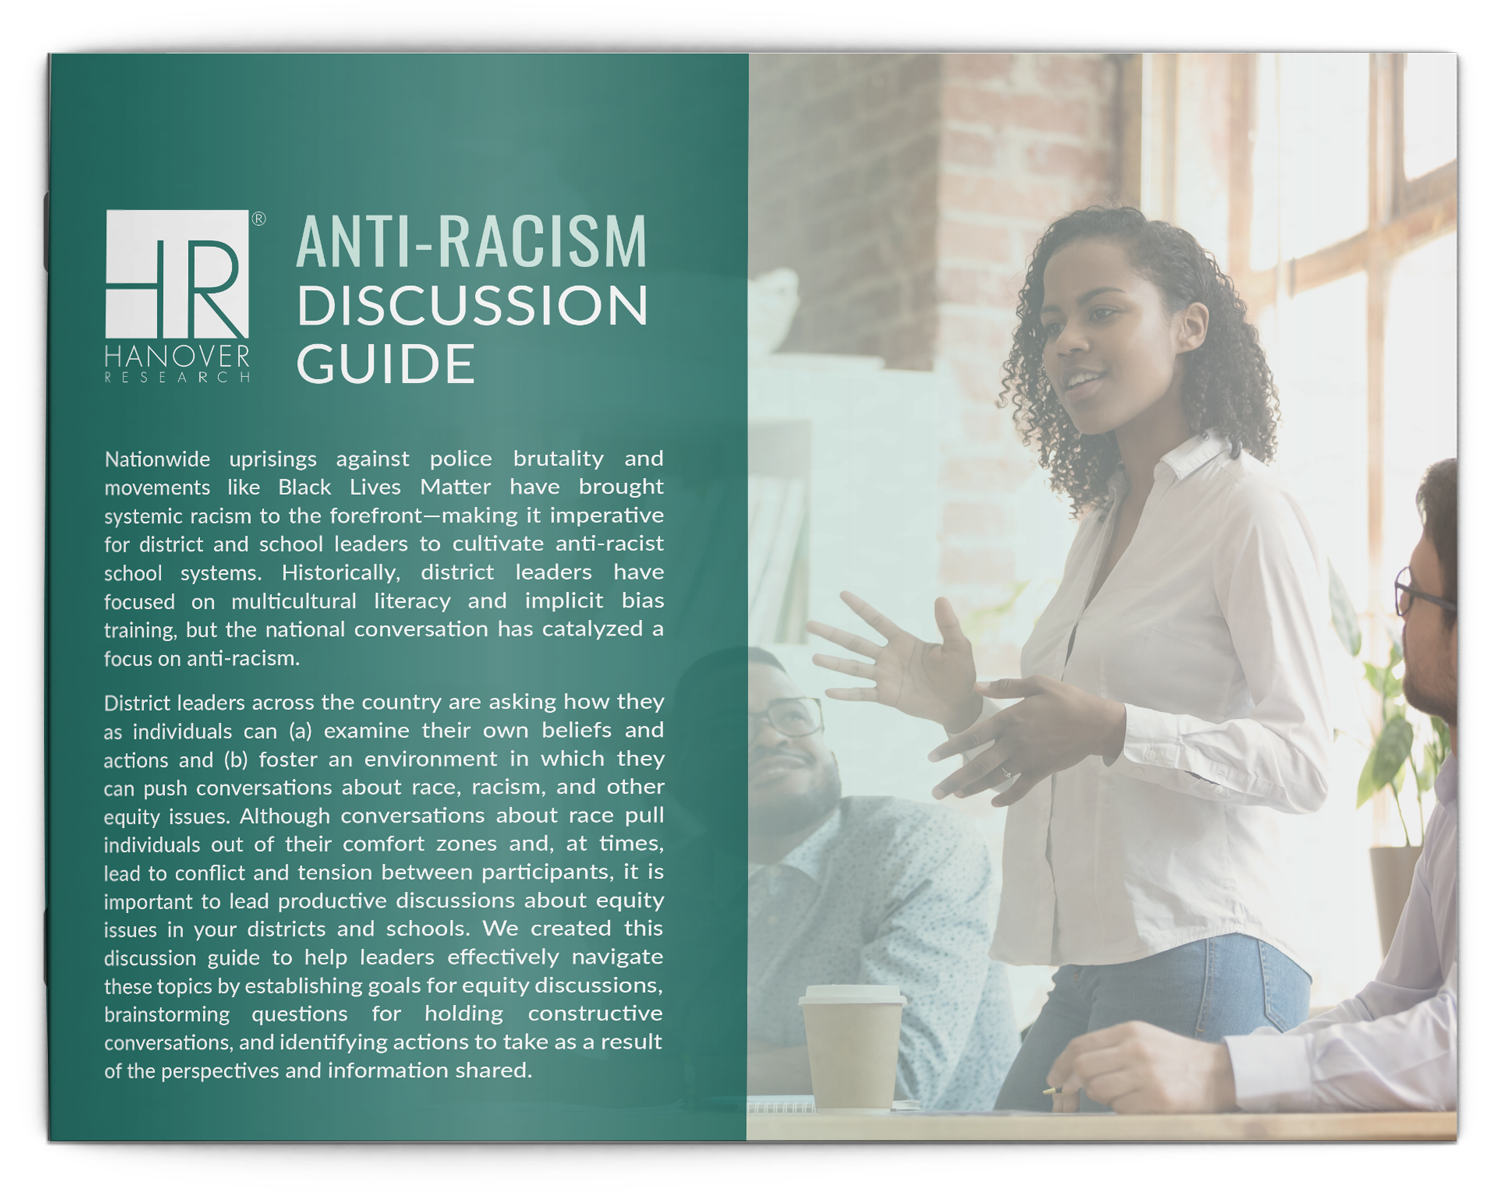 Anti-Racism Discussion Guide